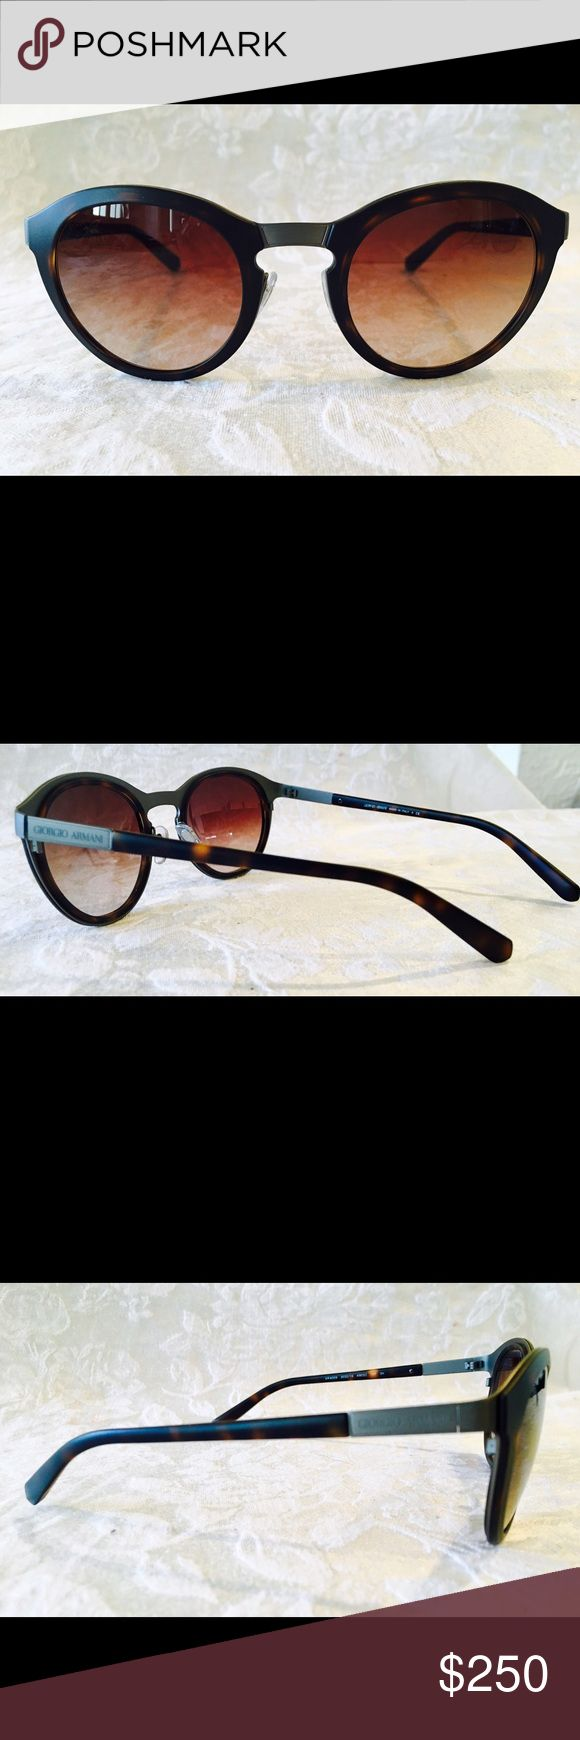 "Giorgio Armani women's sunglasses. NEW!!! Exquisite detail and design. Tortoiseshell frames and matte gunmetal hardware make up this modern ""bookish aviator"" style by Giorgio Armani. Lightweight and compact design. NEW!!! Giorgio Armani Accessories Sunglasses"